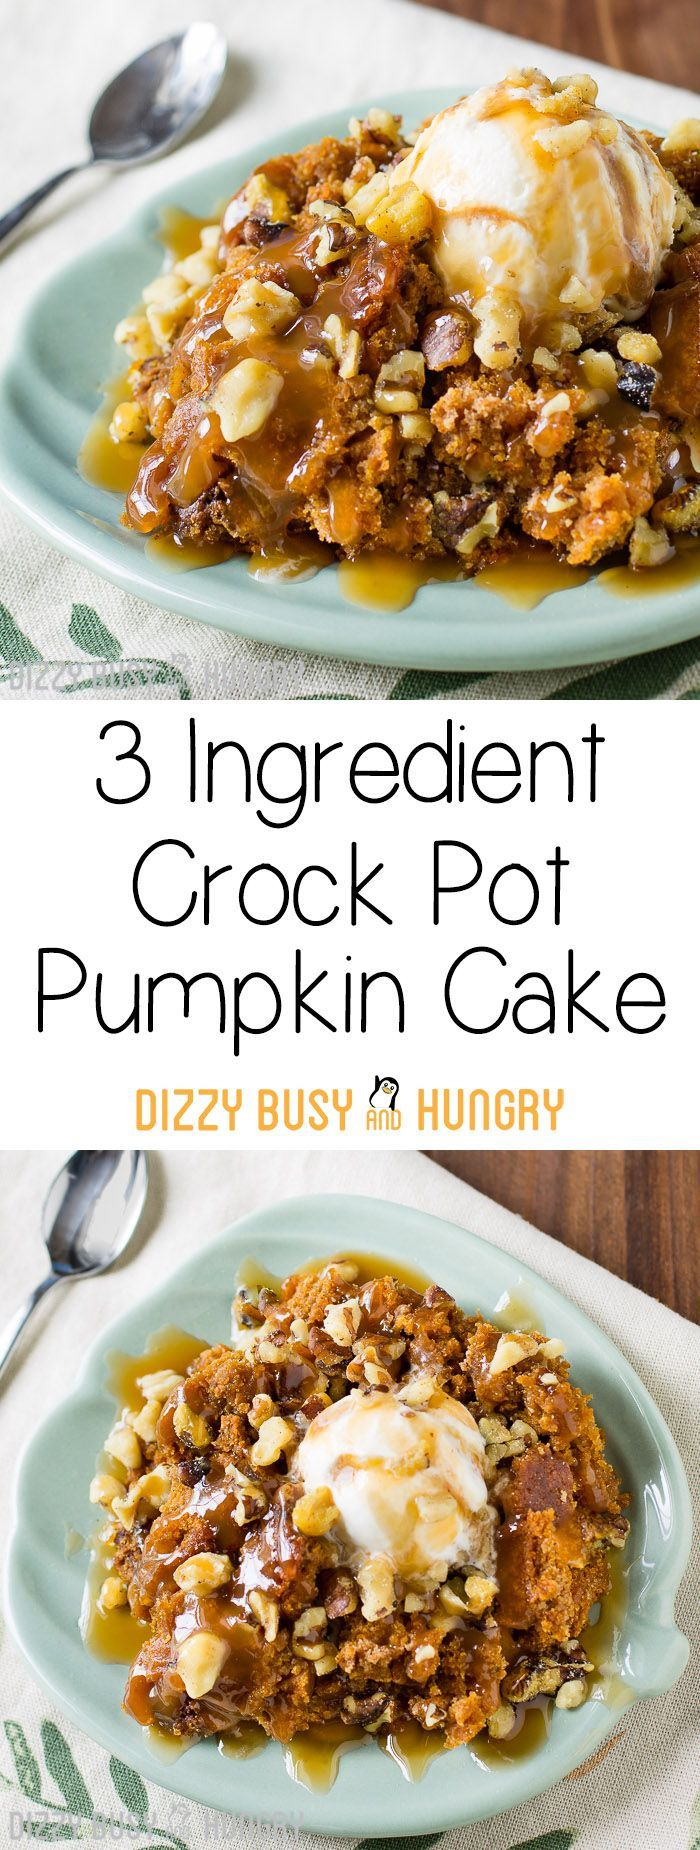 3 Ingredient Crock Pot Pumpkin Cake | DizzyBusyandHungry.com - Sweet treats don't get any easier than this! Serve warm, and top it with caramel sauce, chopped walnuts, and vanilla ice cream, and you have a dessert to die for!